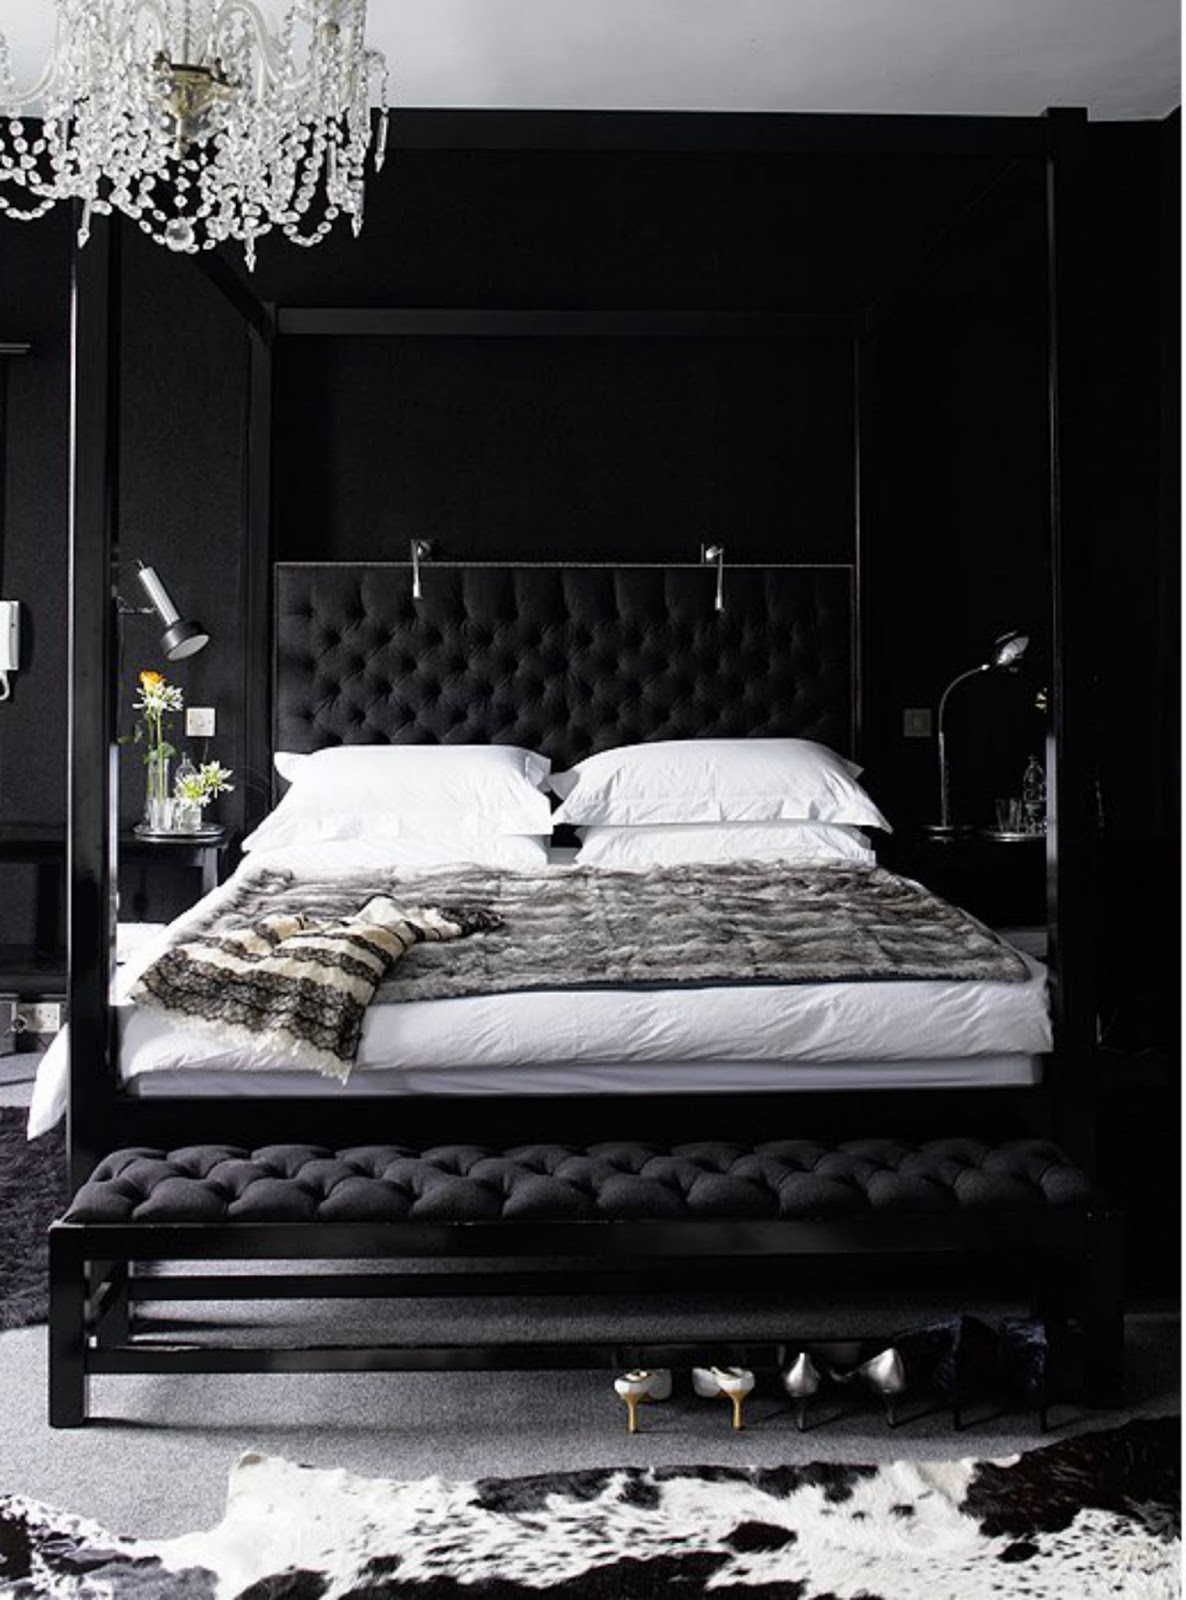 navy black bedroom walls interior design decorating tips dark rooms modern traditional transitional